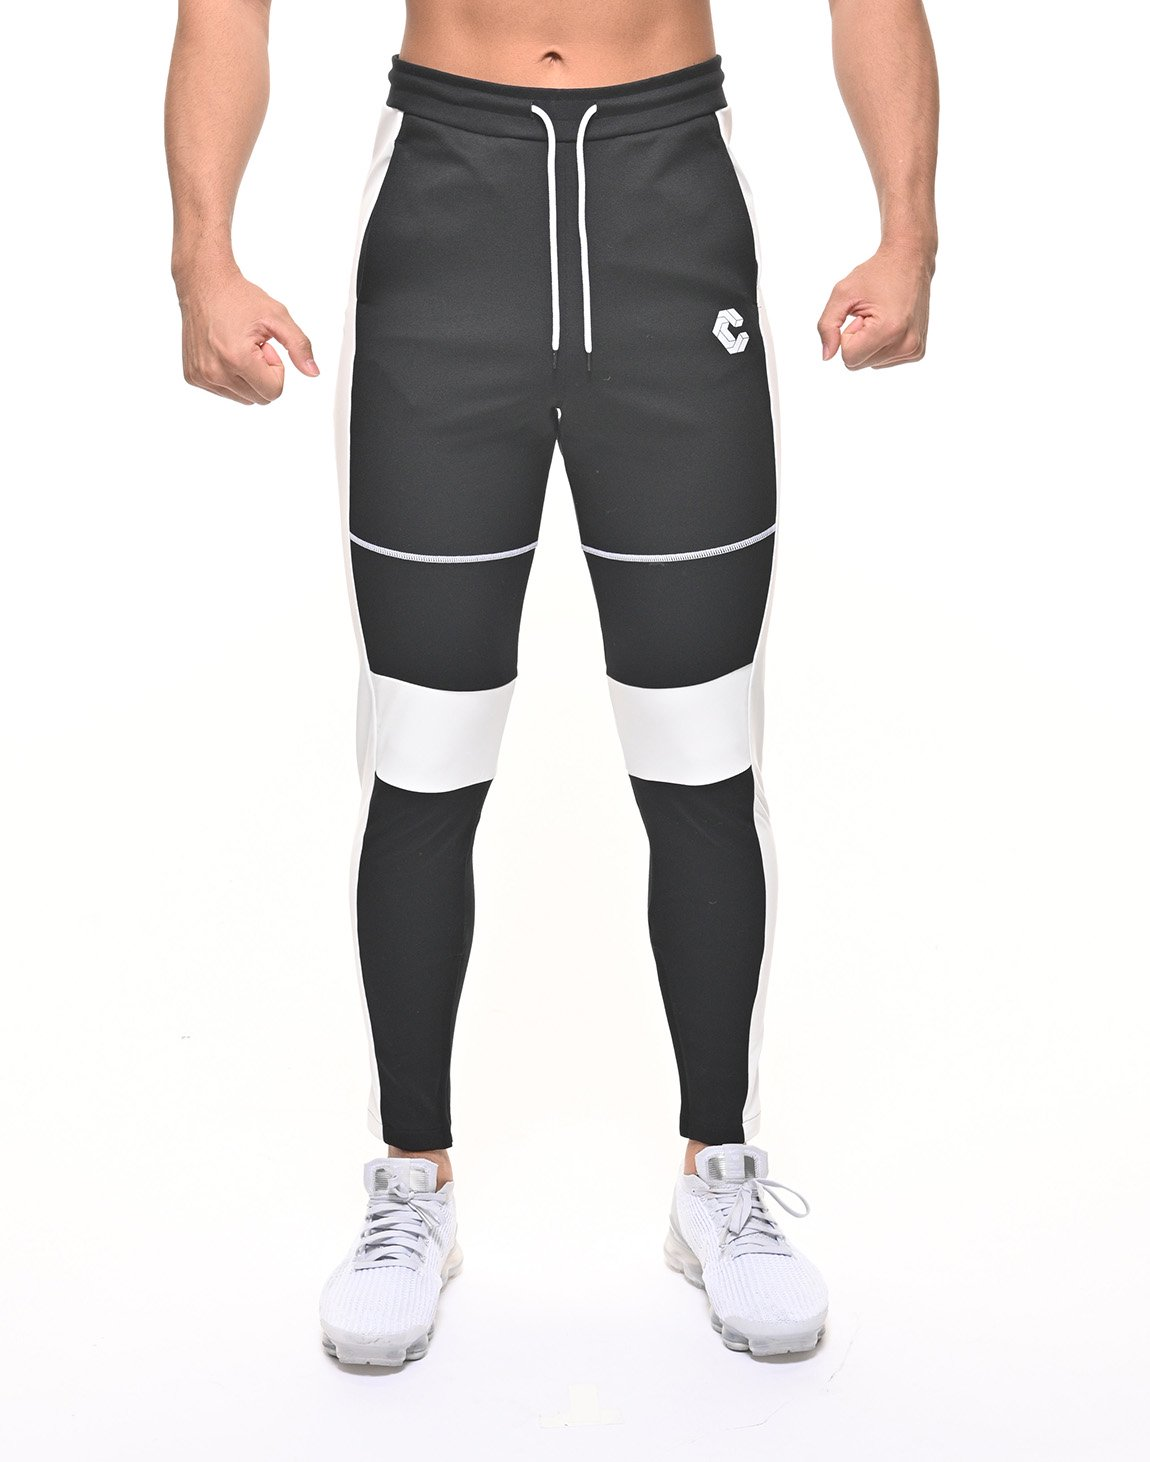 <img class='new_mark_img1' src='https://img.shop-pro.jp/img/new/icons55.gif' style='border:none;display:inline;margin:0px;padding:0px;width:auto;' />CRONOS THIGH STITCH LINE PANTS 【BLACK】